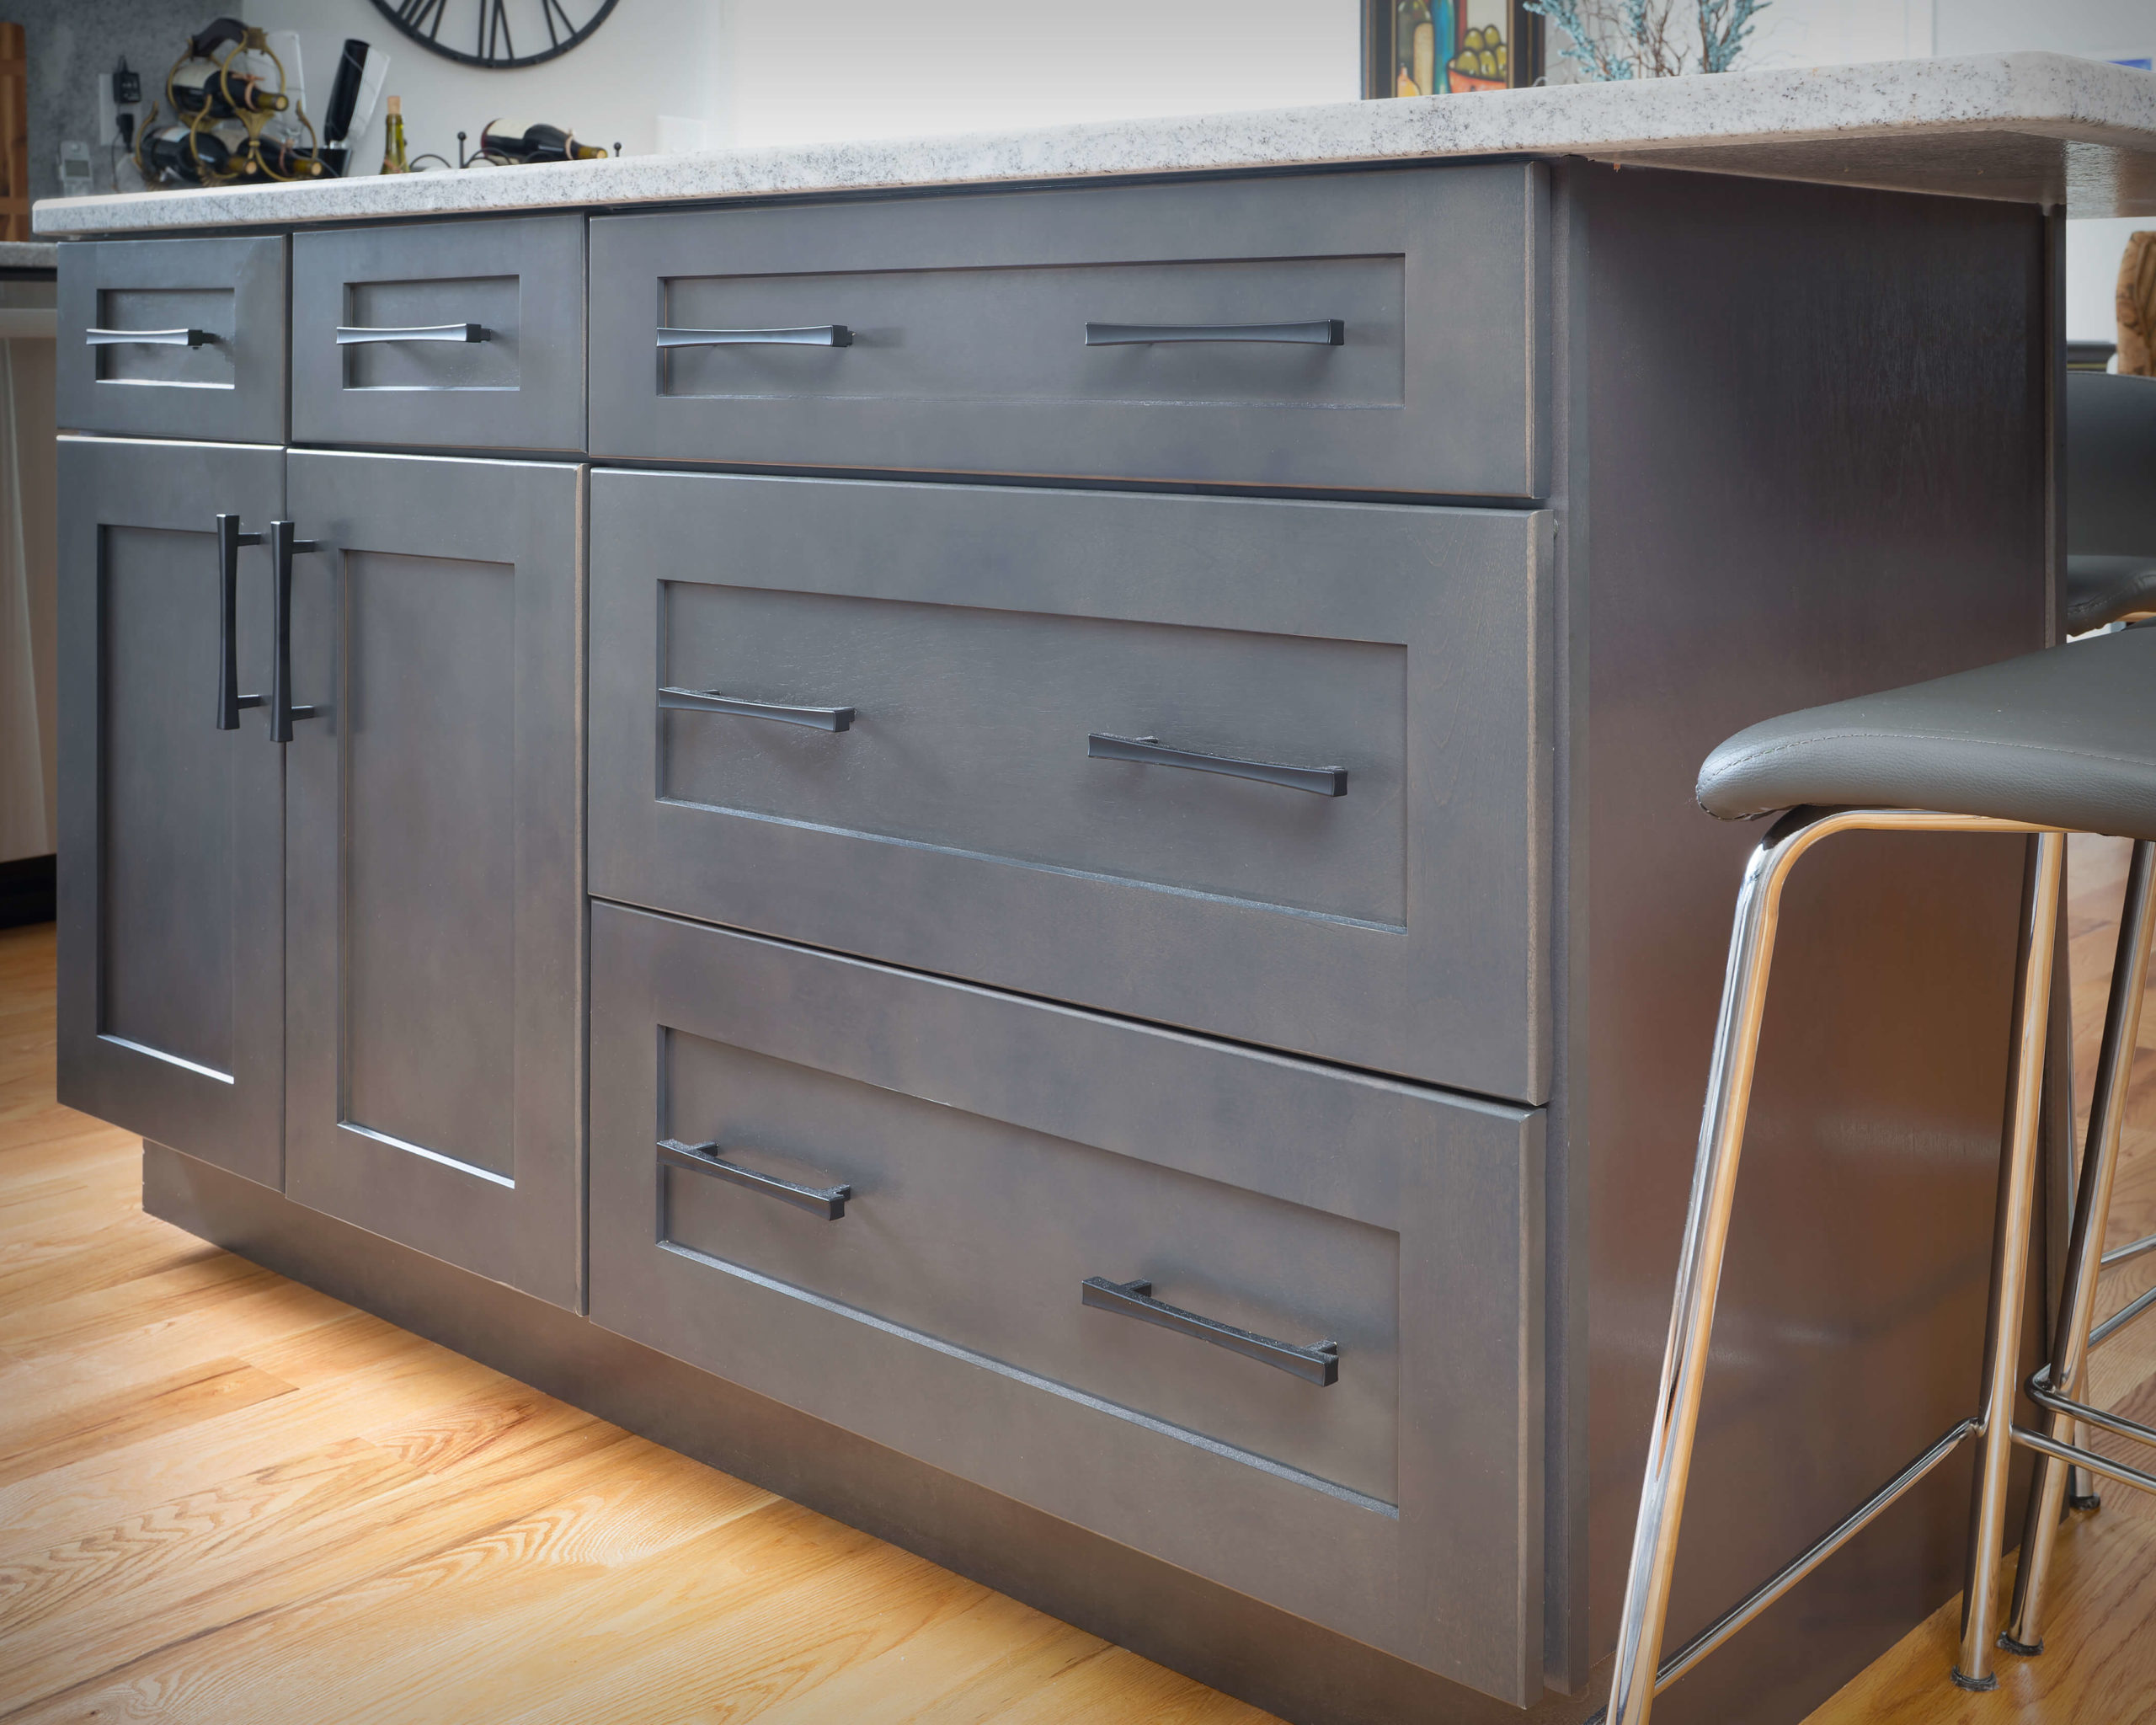 Island counter rear view featuring Matte Black bar pulls in new kitchen and bathroom project in Middletown.